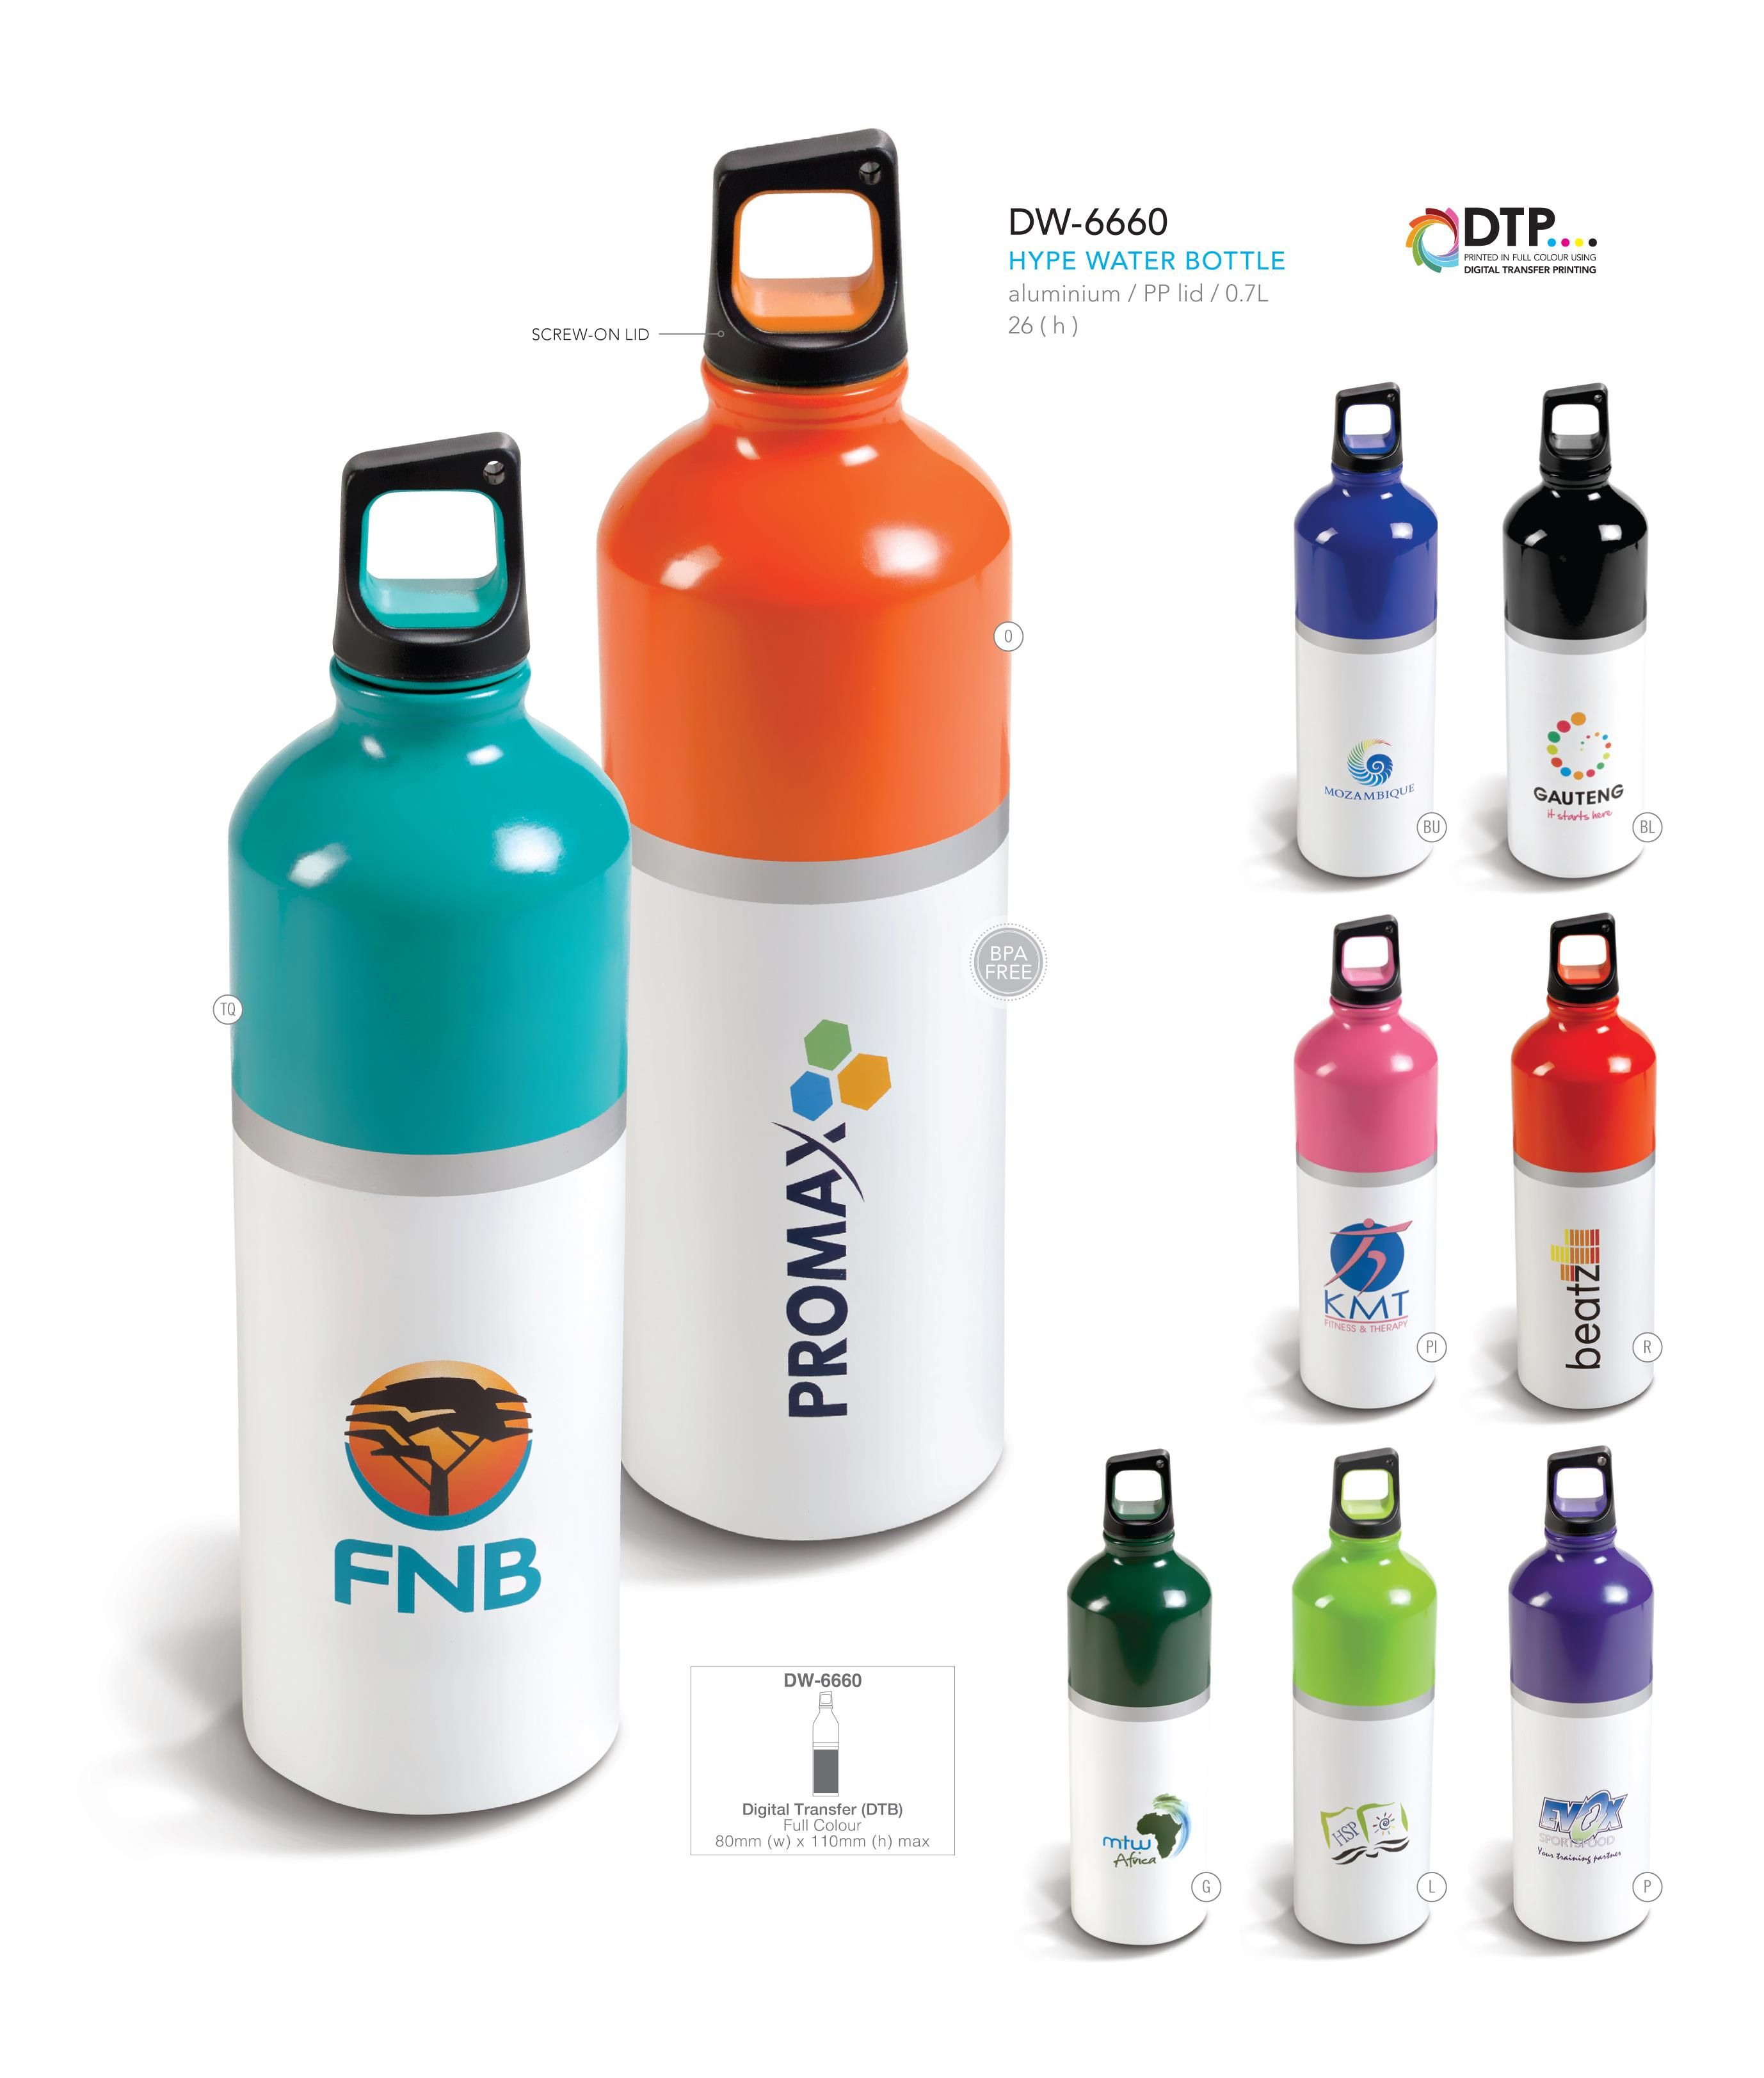 water bottle giveaway promotional